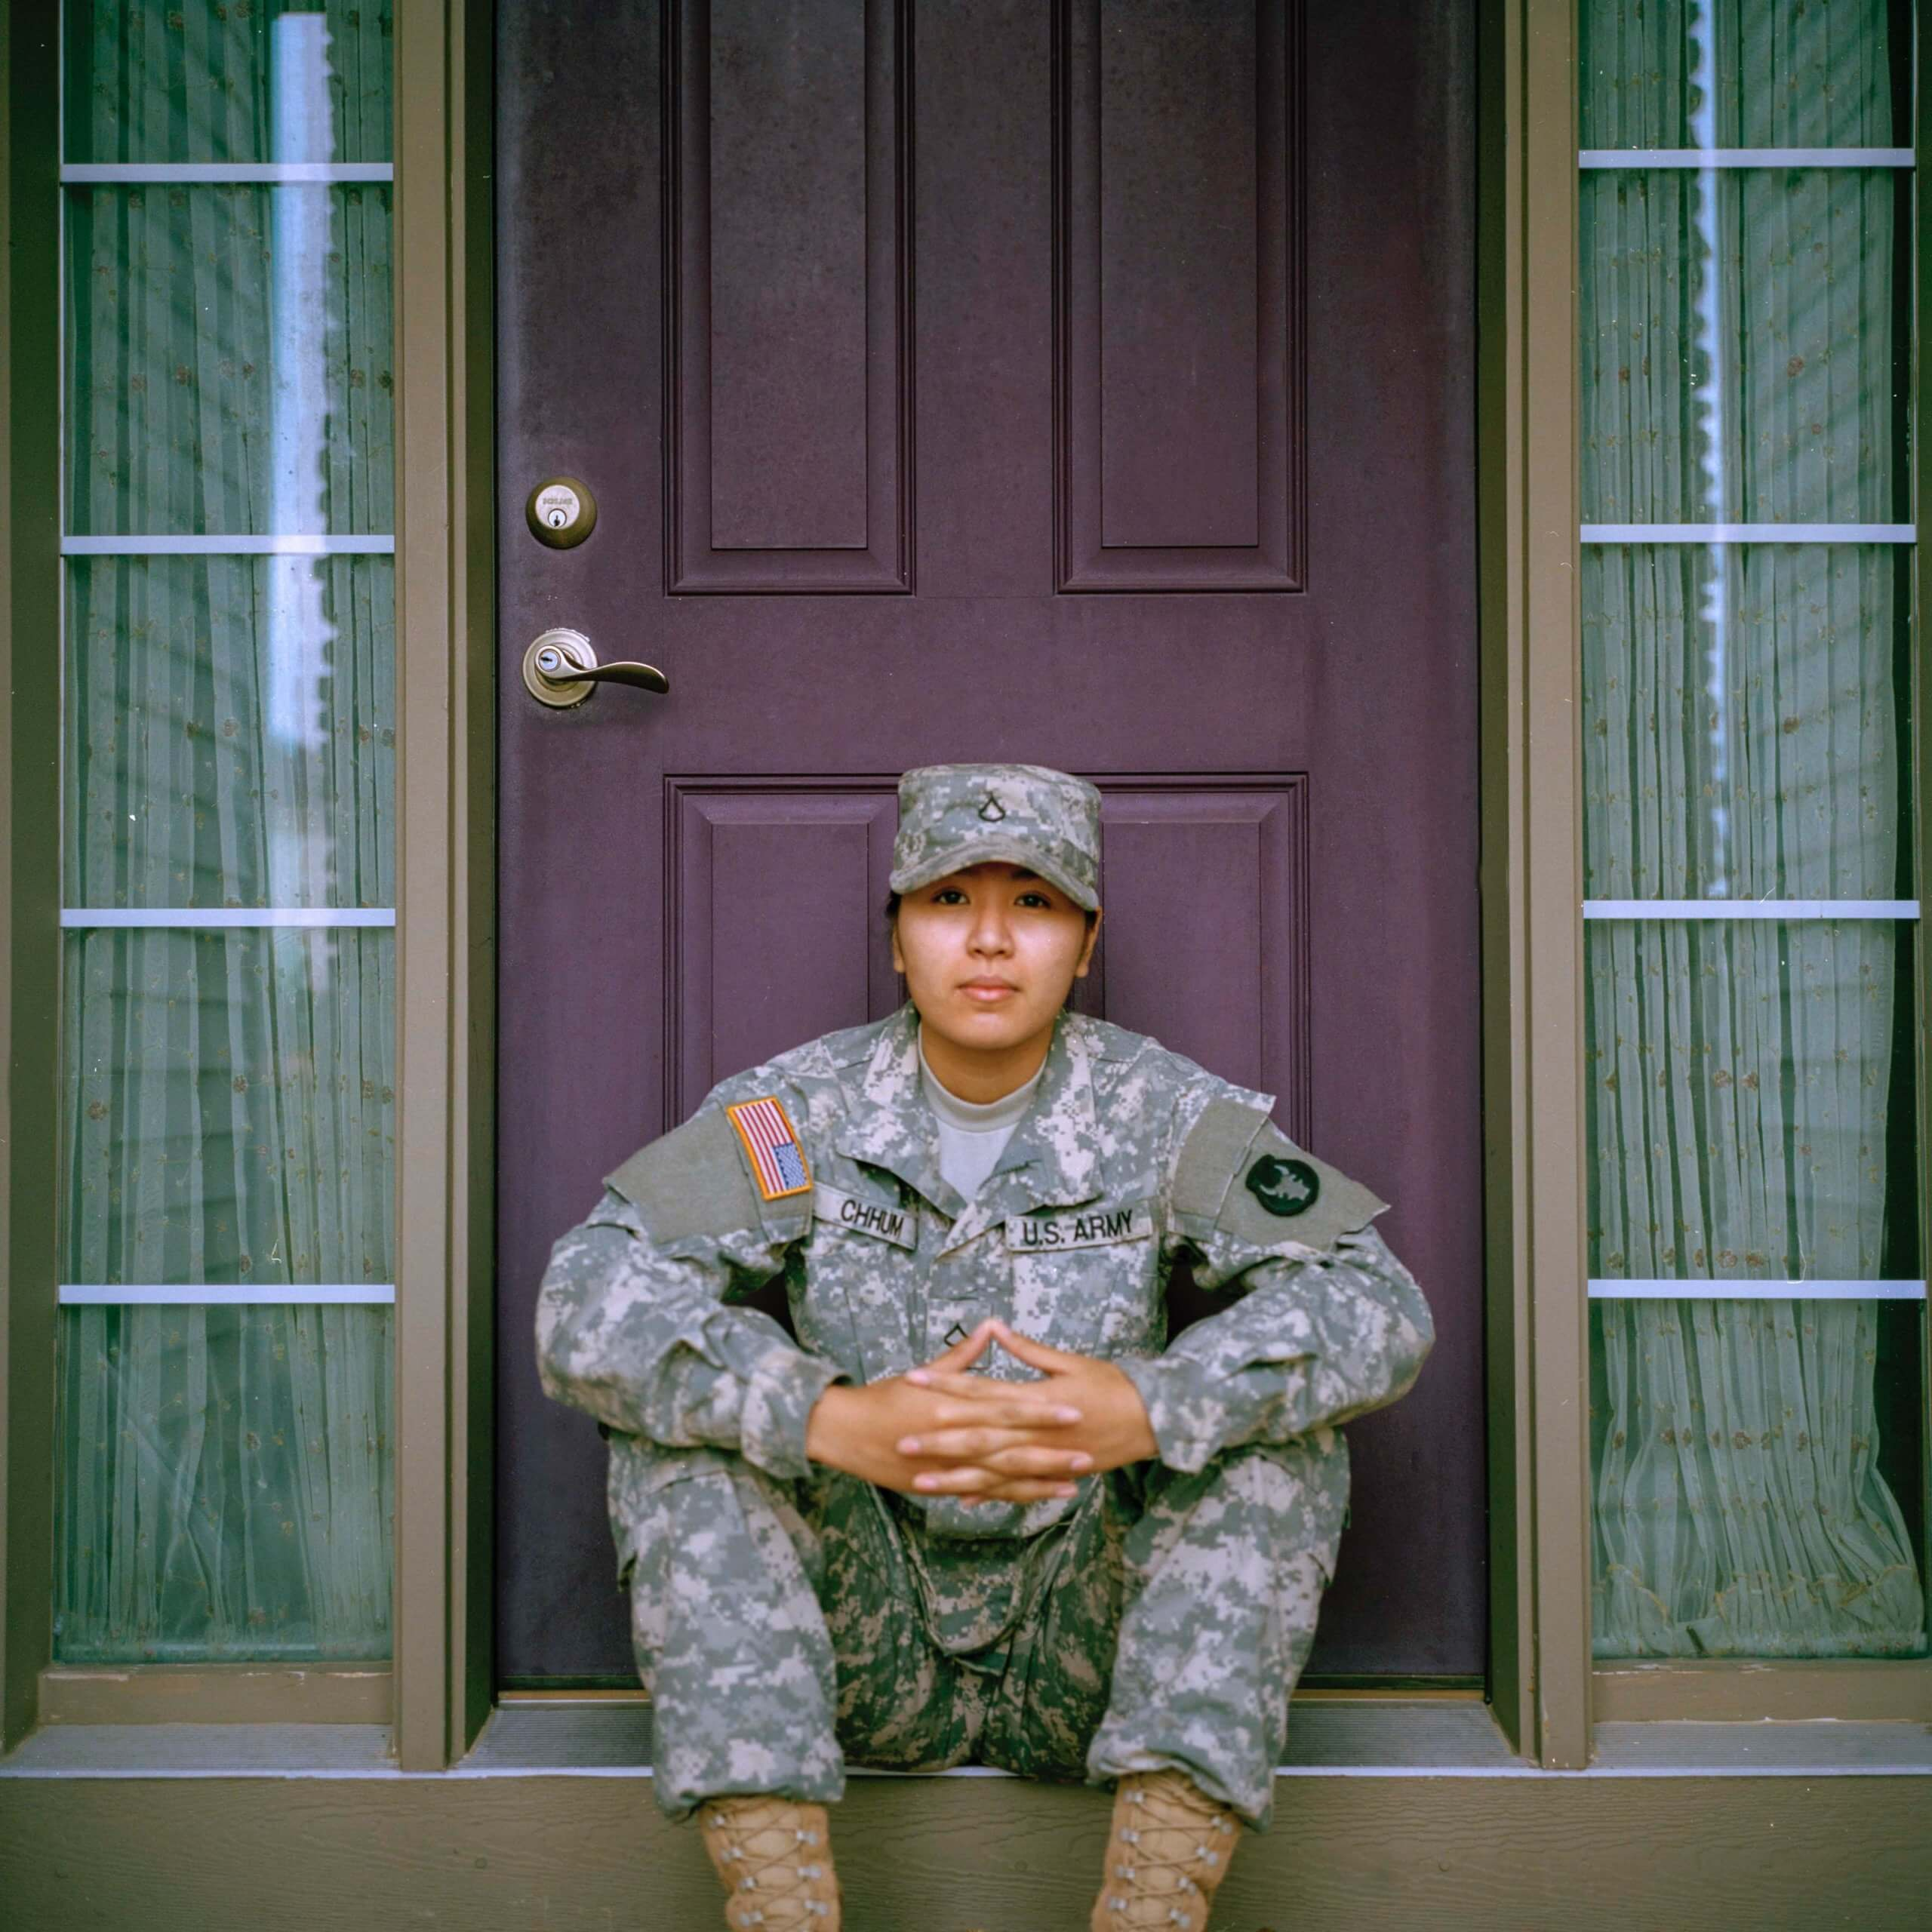 Woman in army uniform sitting in front of a door